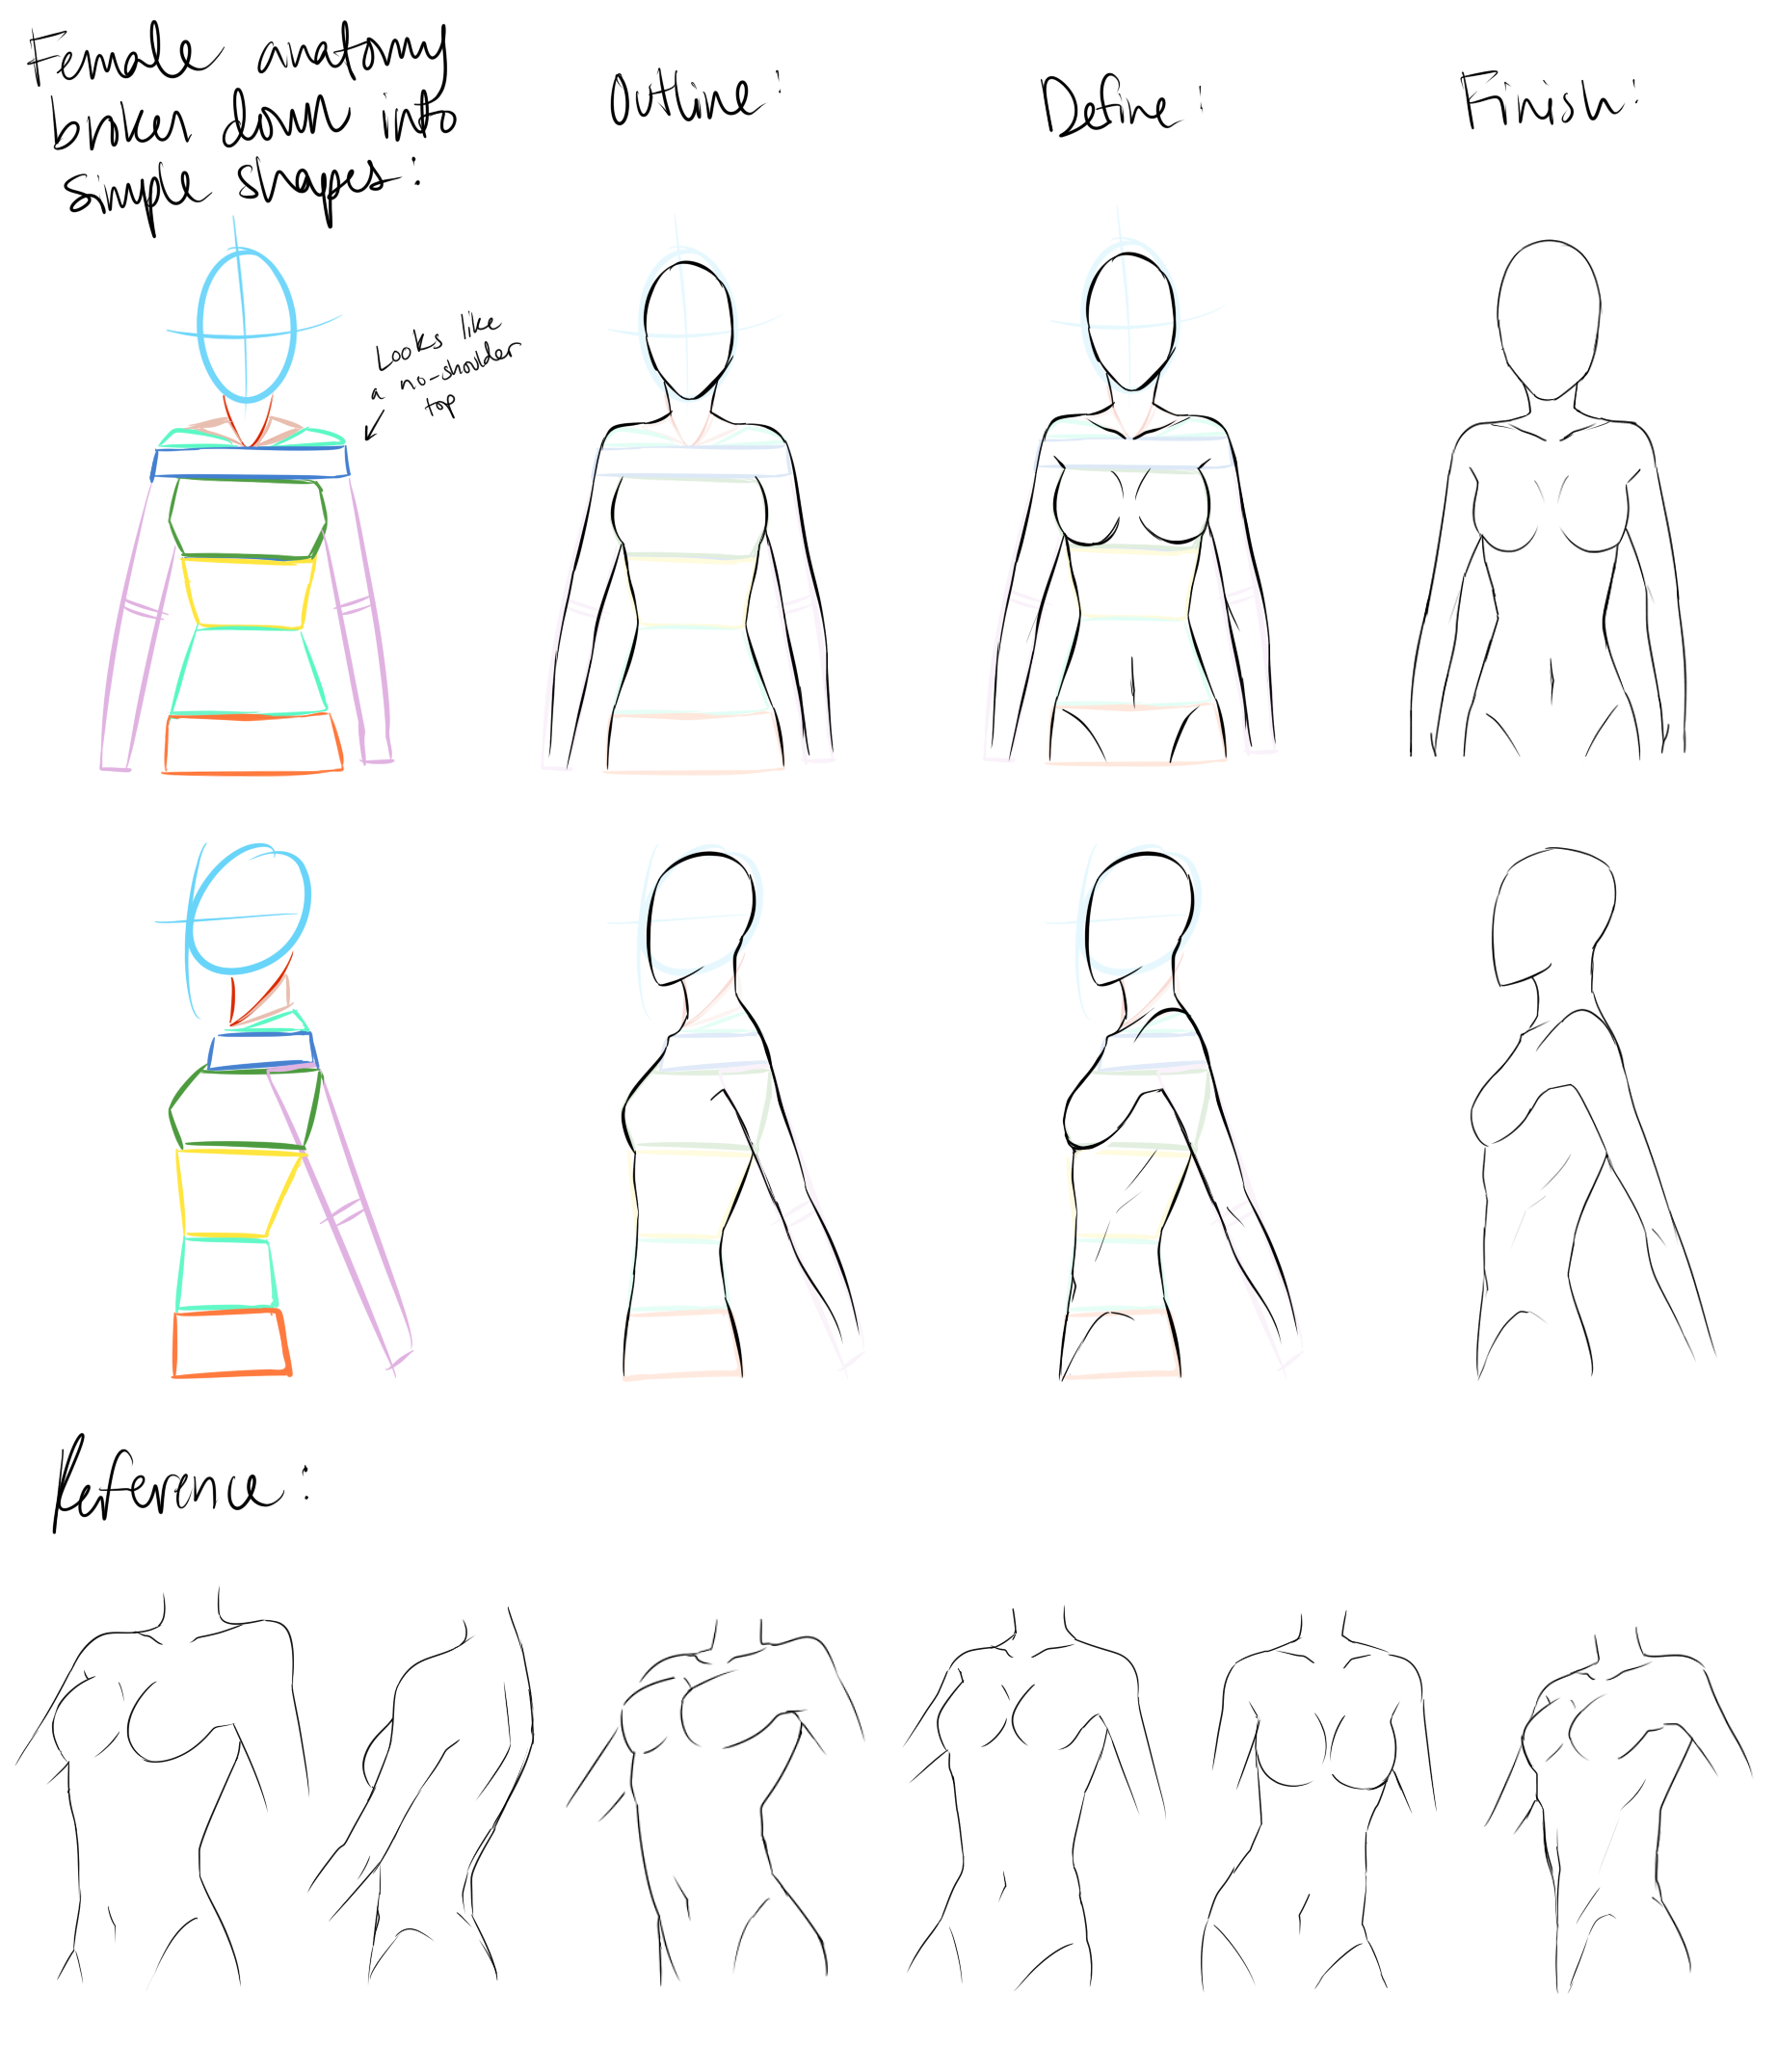 Female Anatomy Reference By Devianttear On Deviantart Female Anatomy Reference Anatomy Reference Human Anatomy Drawing